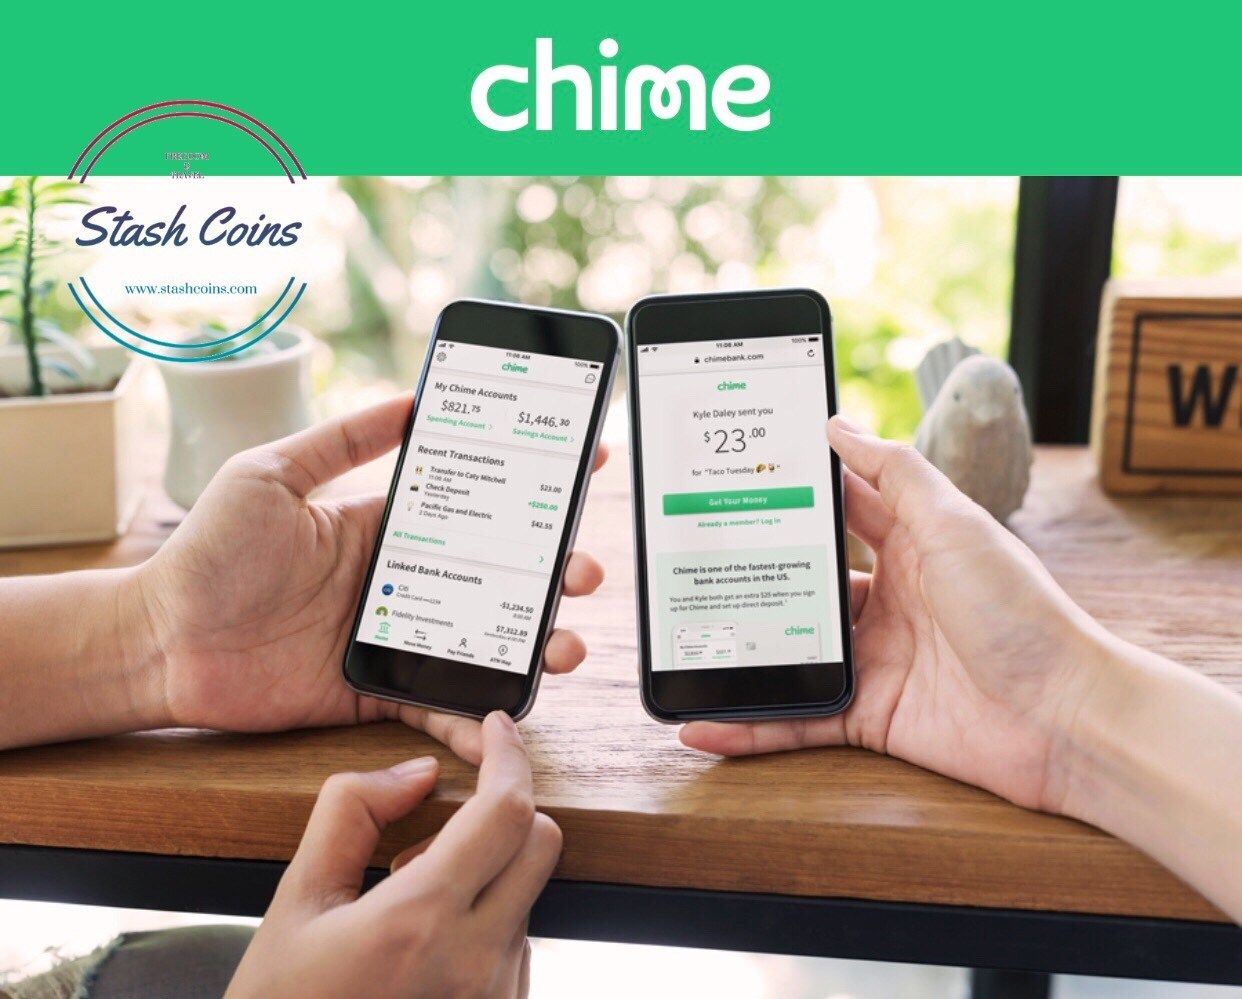 Pay friends free with chime free coins travel